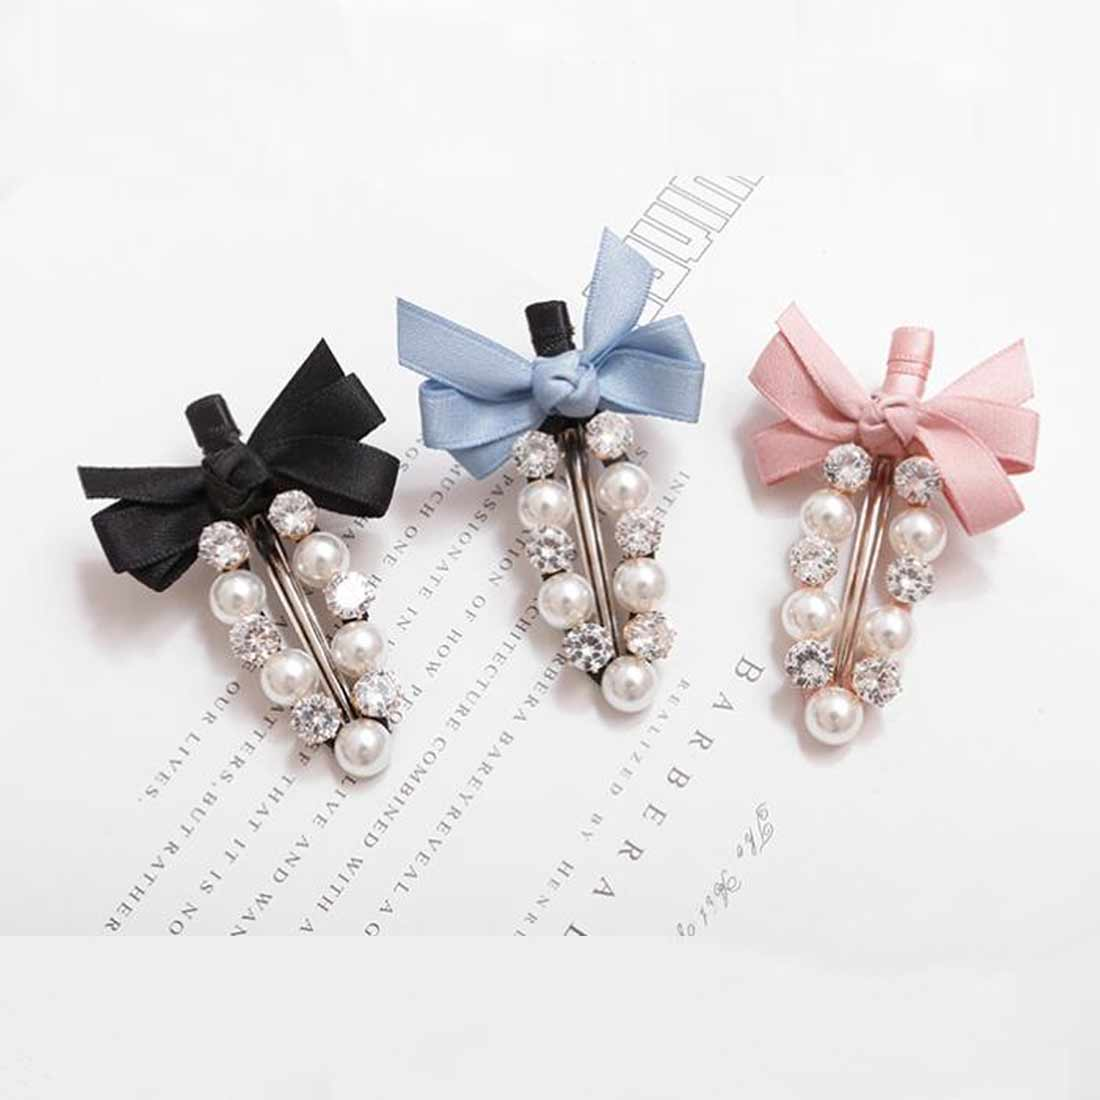 Fashion handmade Gold Color 1PC Pearl Imitation Hair Clip Snap Barrette Stick Cutey Hair Styling Accessories in Women 39 s Hair Accessories from Apparel Accessories